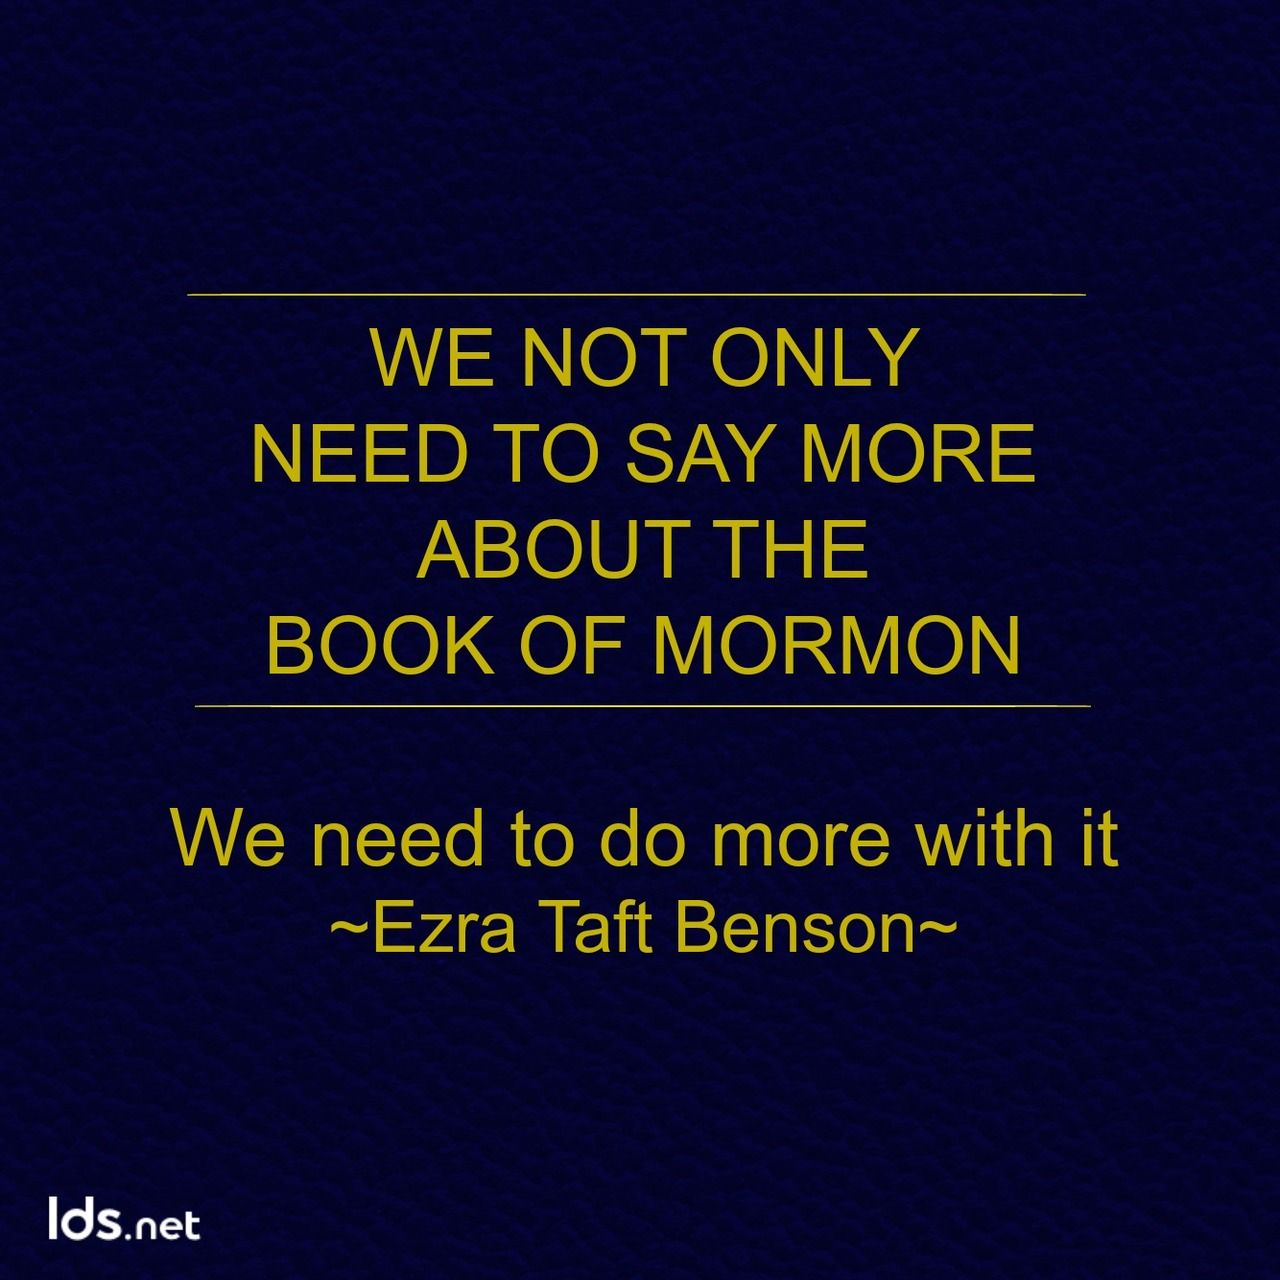 Inspirational Book Of Mormon Quotes: We Not Only Need To Say More About The #BookofMormon, But